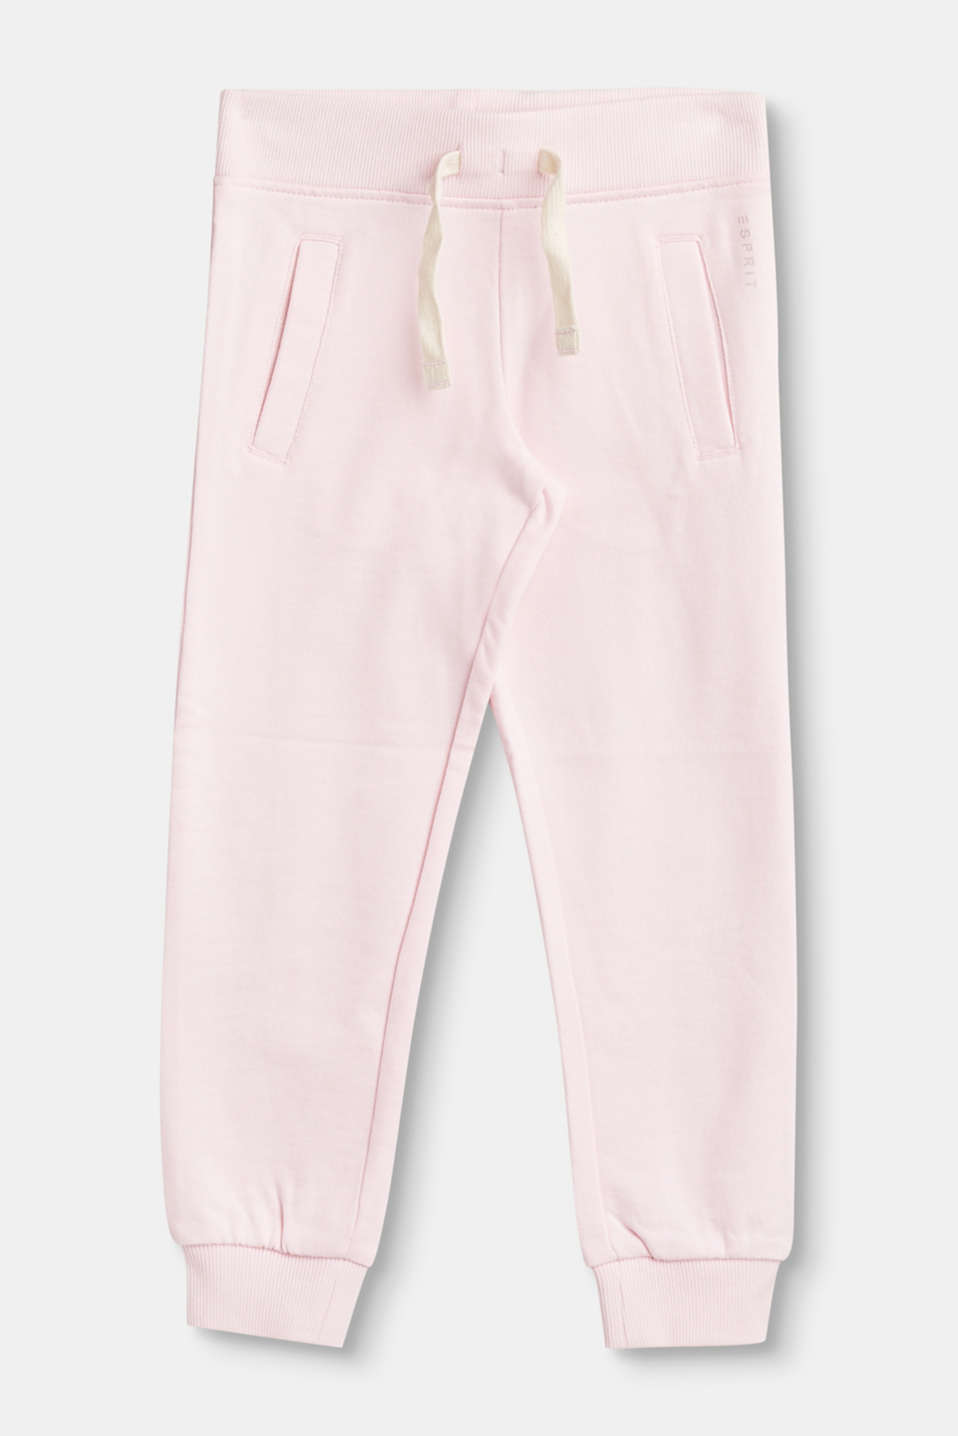 Esprit - Tracksuit bottoms, 100% cotton